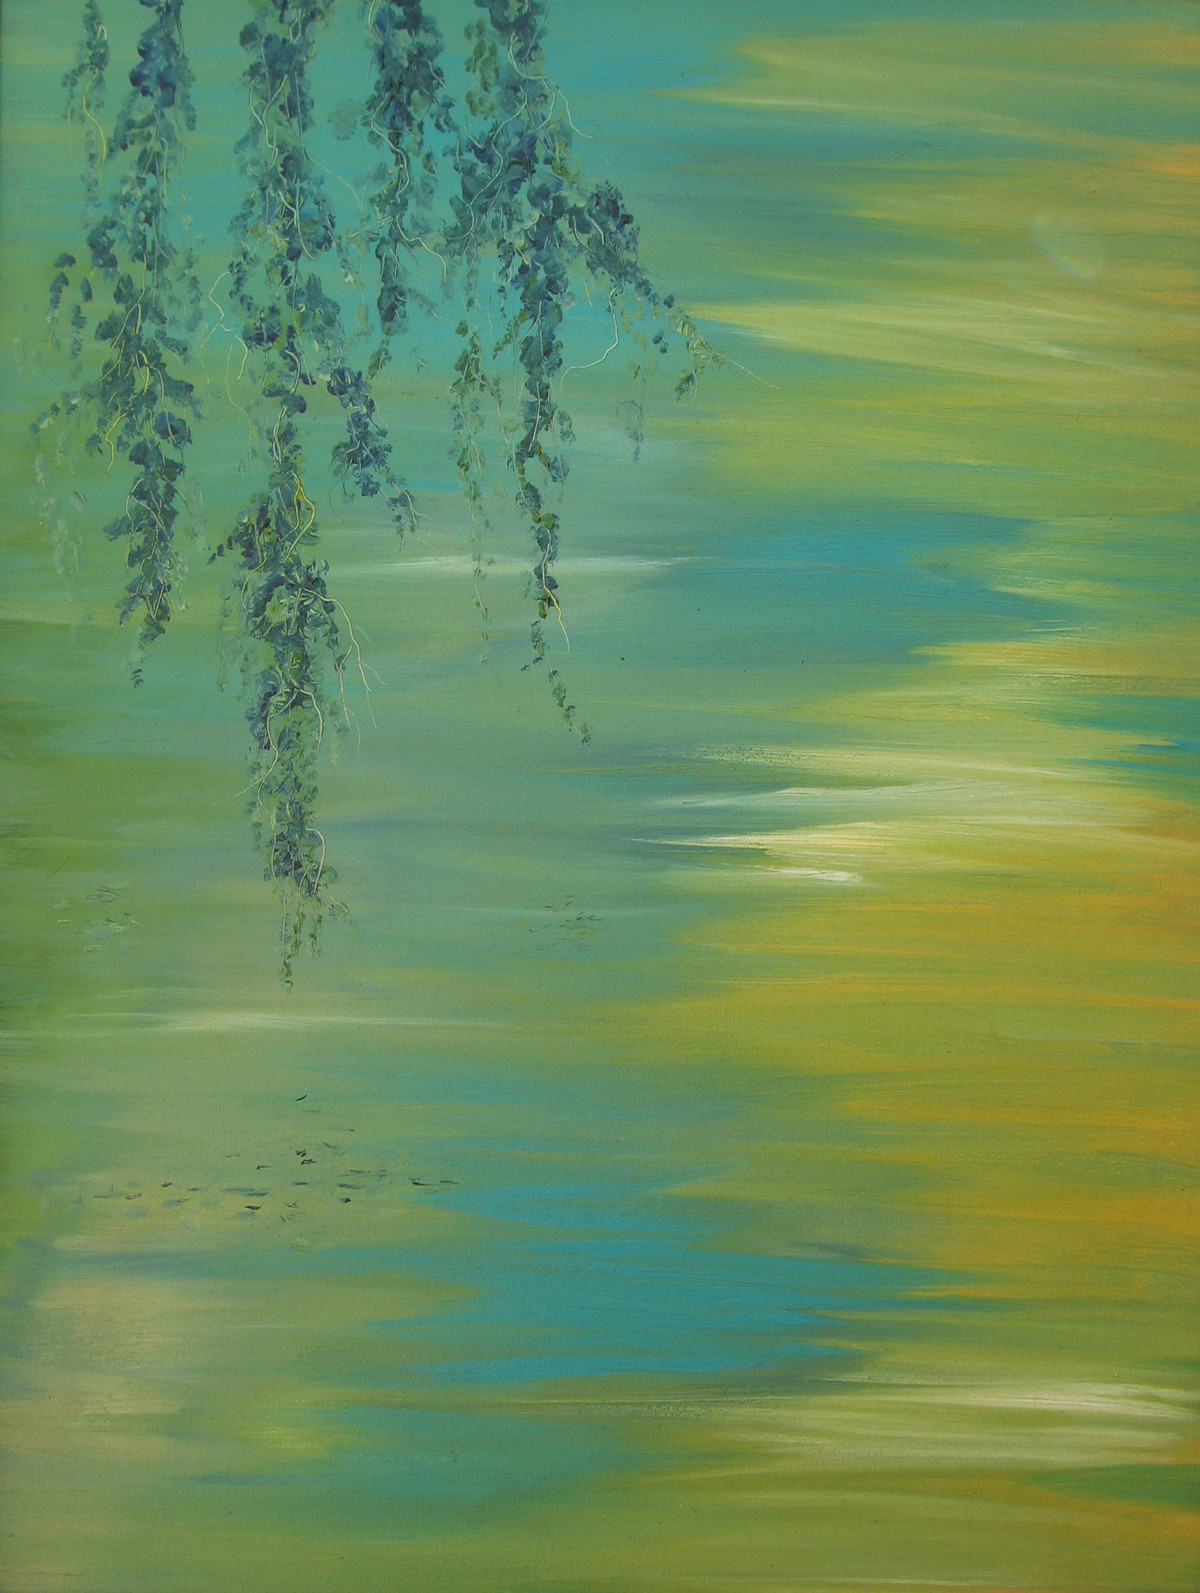 Branches and Water II by Animesh Roy, Expressionism Painting, Oil on Canvas, Highland color